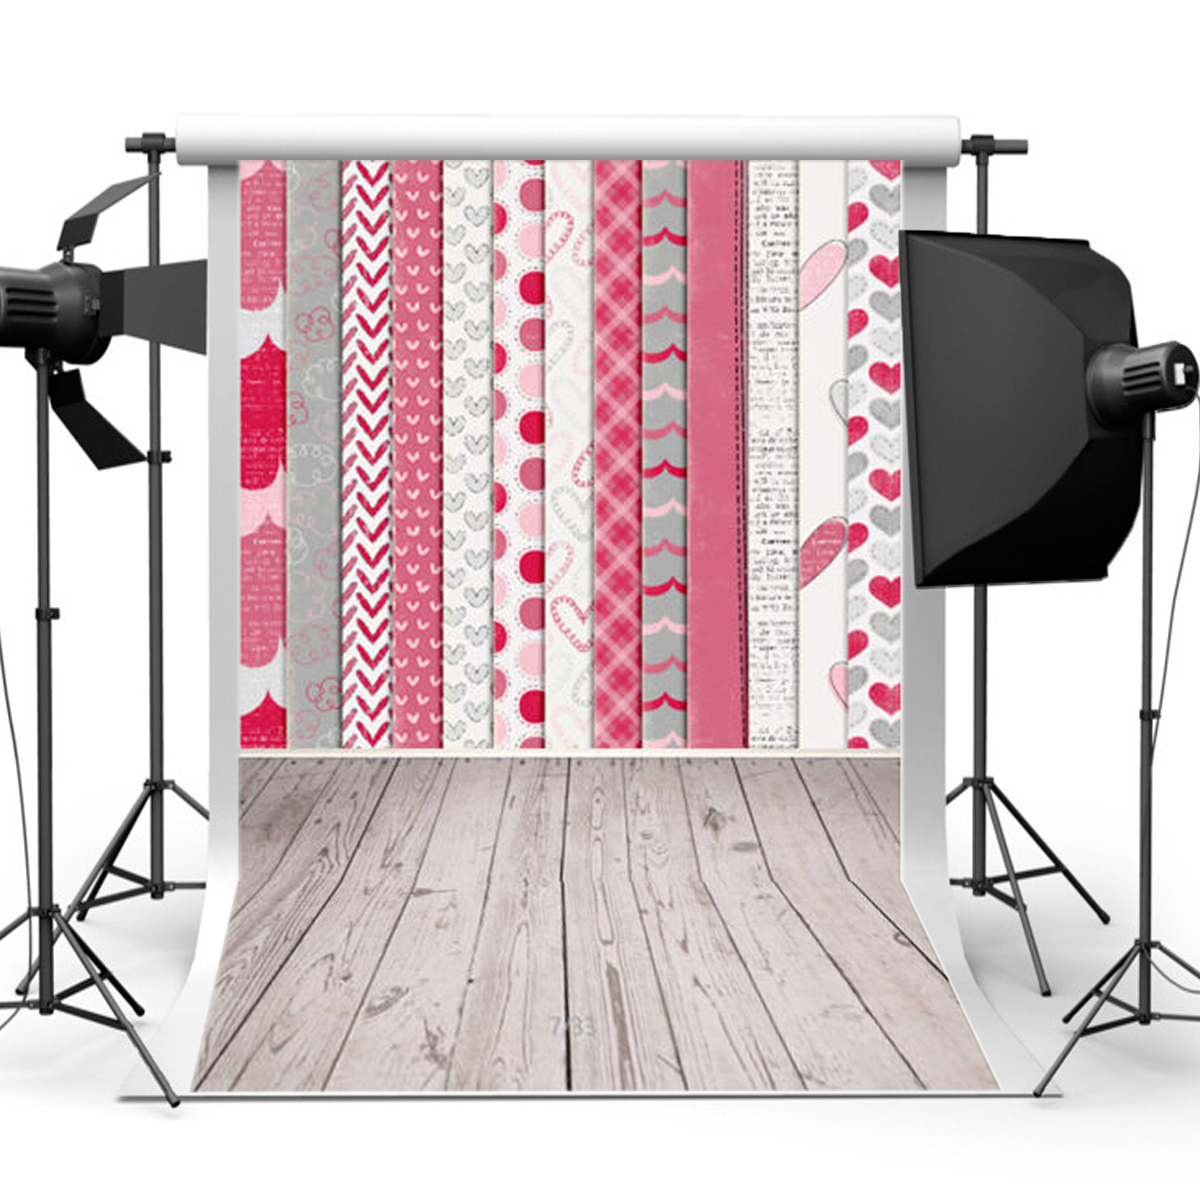 5x7FT Vinyl Valentine's Day Theme Heart Background Backdrop Photography Prop